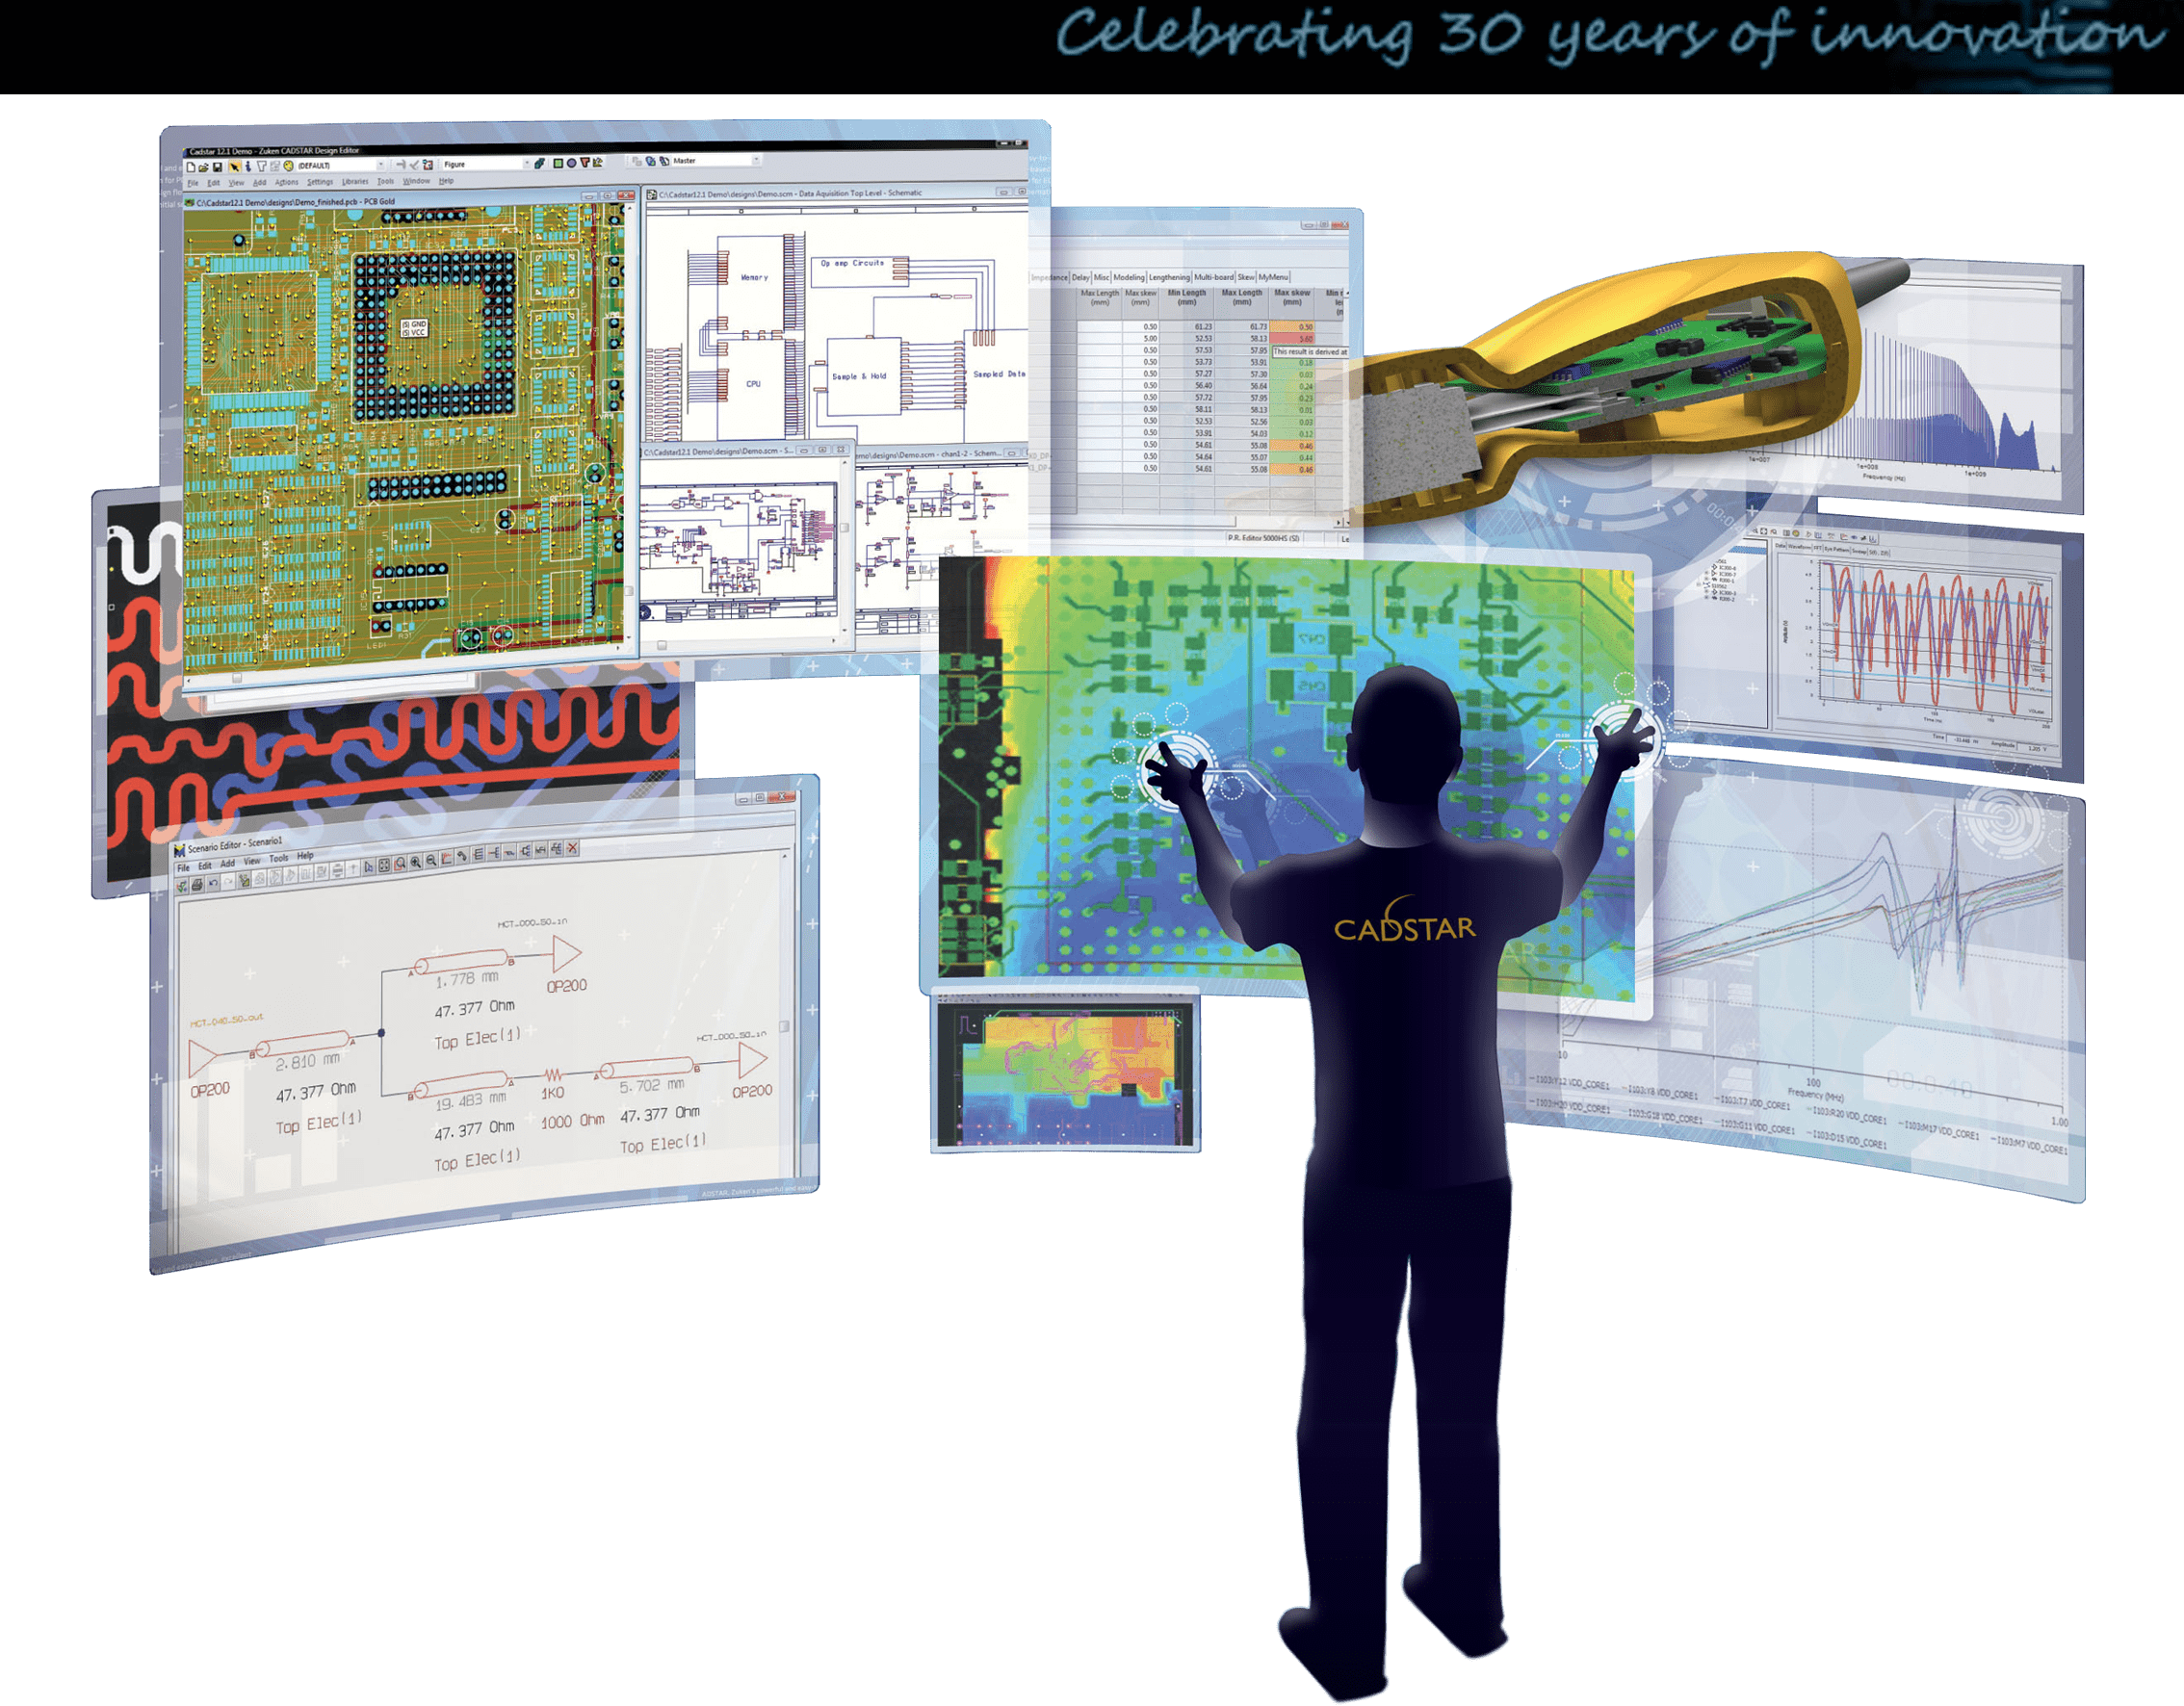 3D Promotion pcb design software cadstar basic board modeler lite